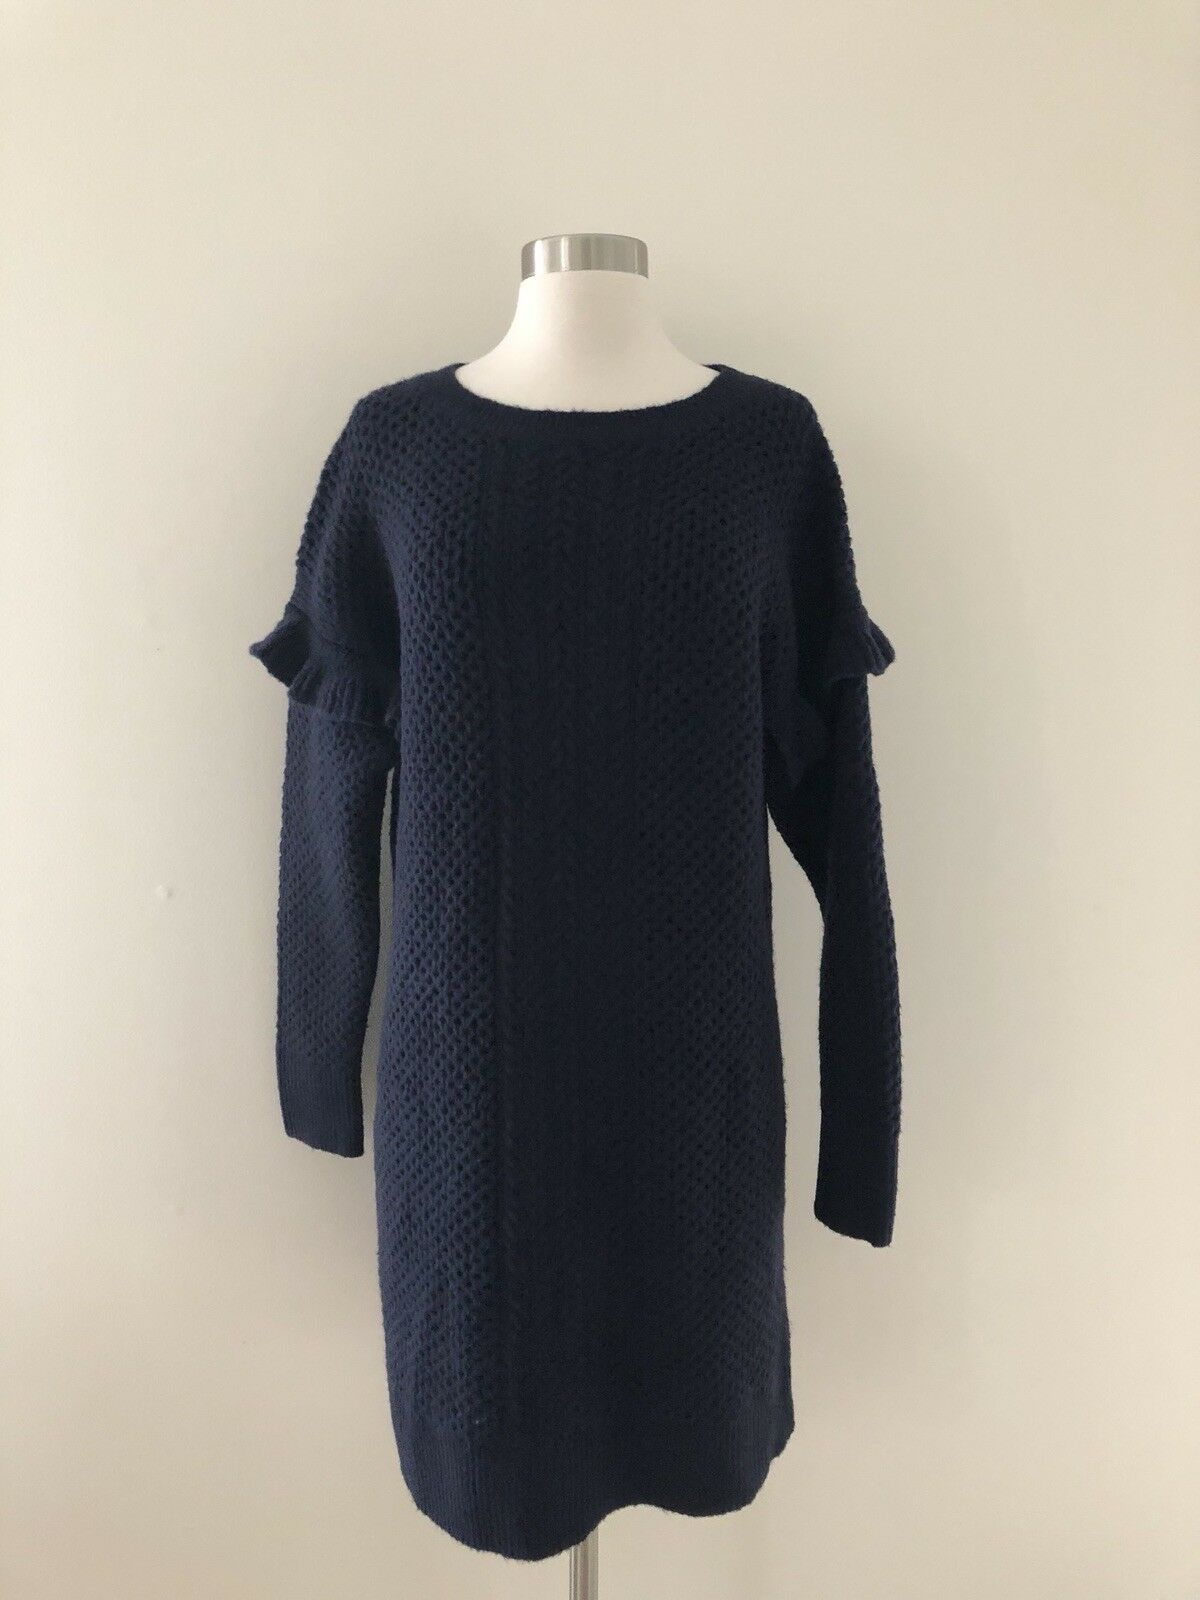 New J Crew Cable-knit ruffle-sleeve sweater-dress Navy bluee Size M H2478